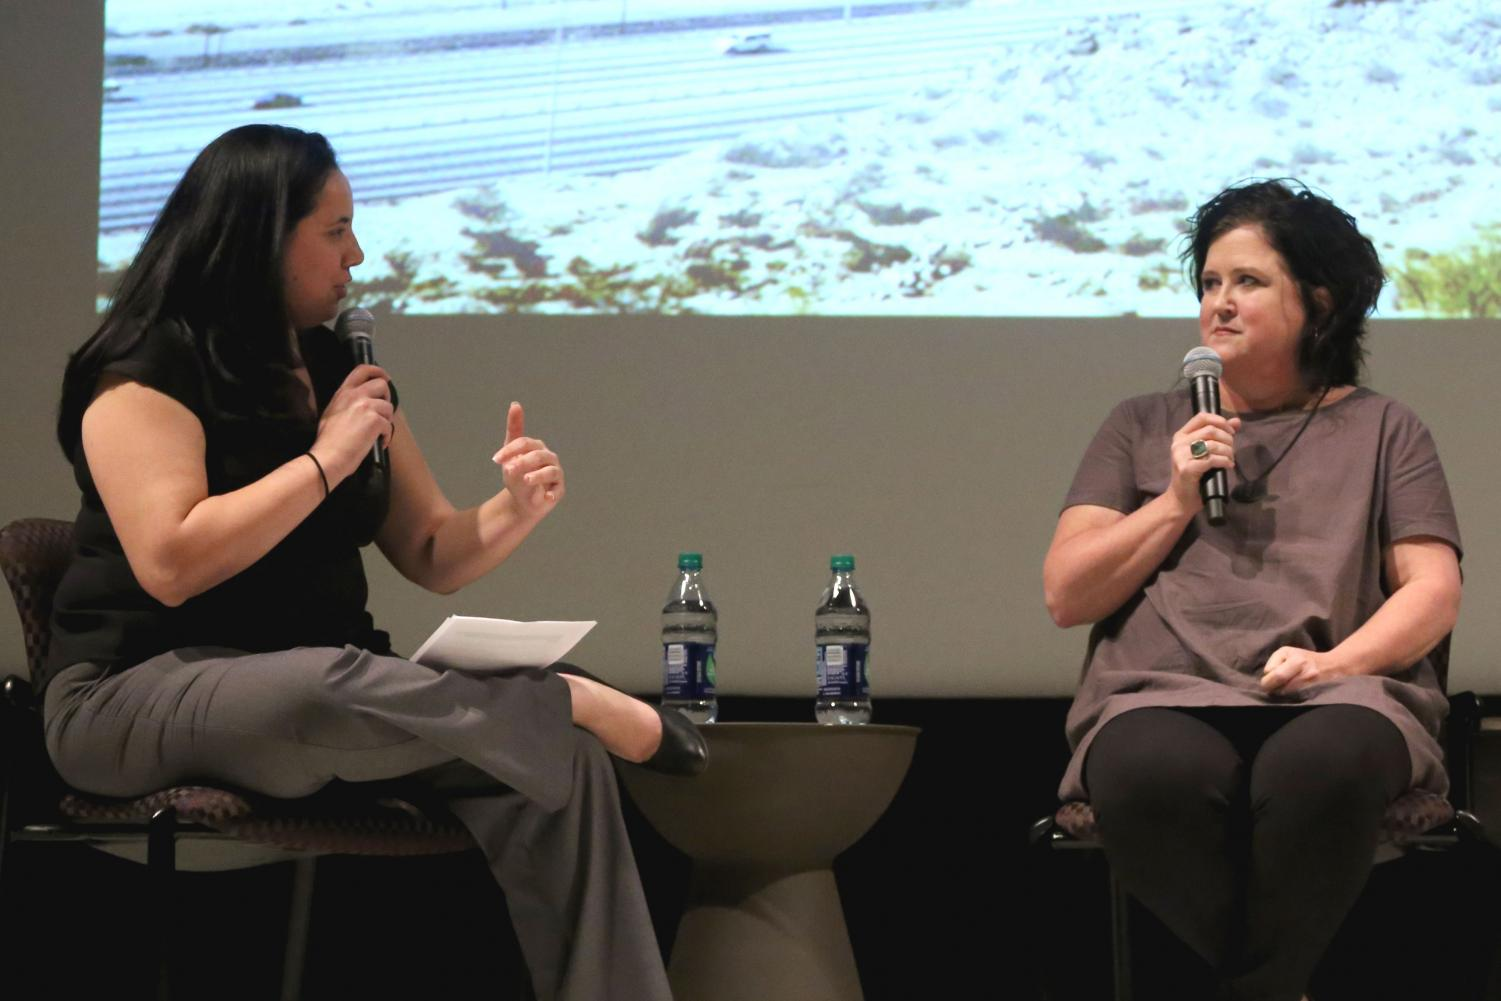 El+Paso+Times+Editor+Zahira+Torres+hosted+the+panel+discussion+on+Thursday%2C+June+7+at+the+Union+Cinema.+